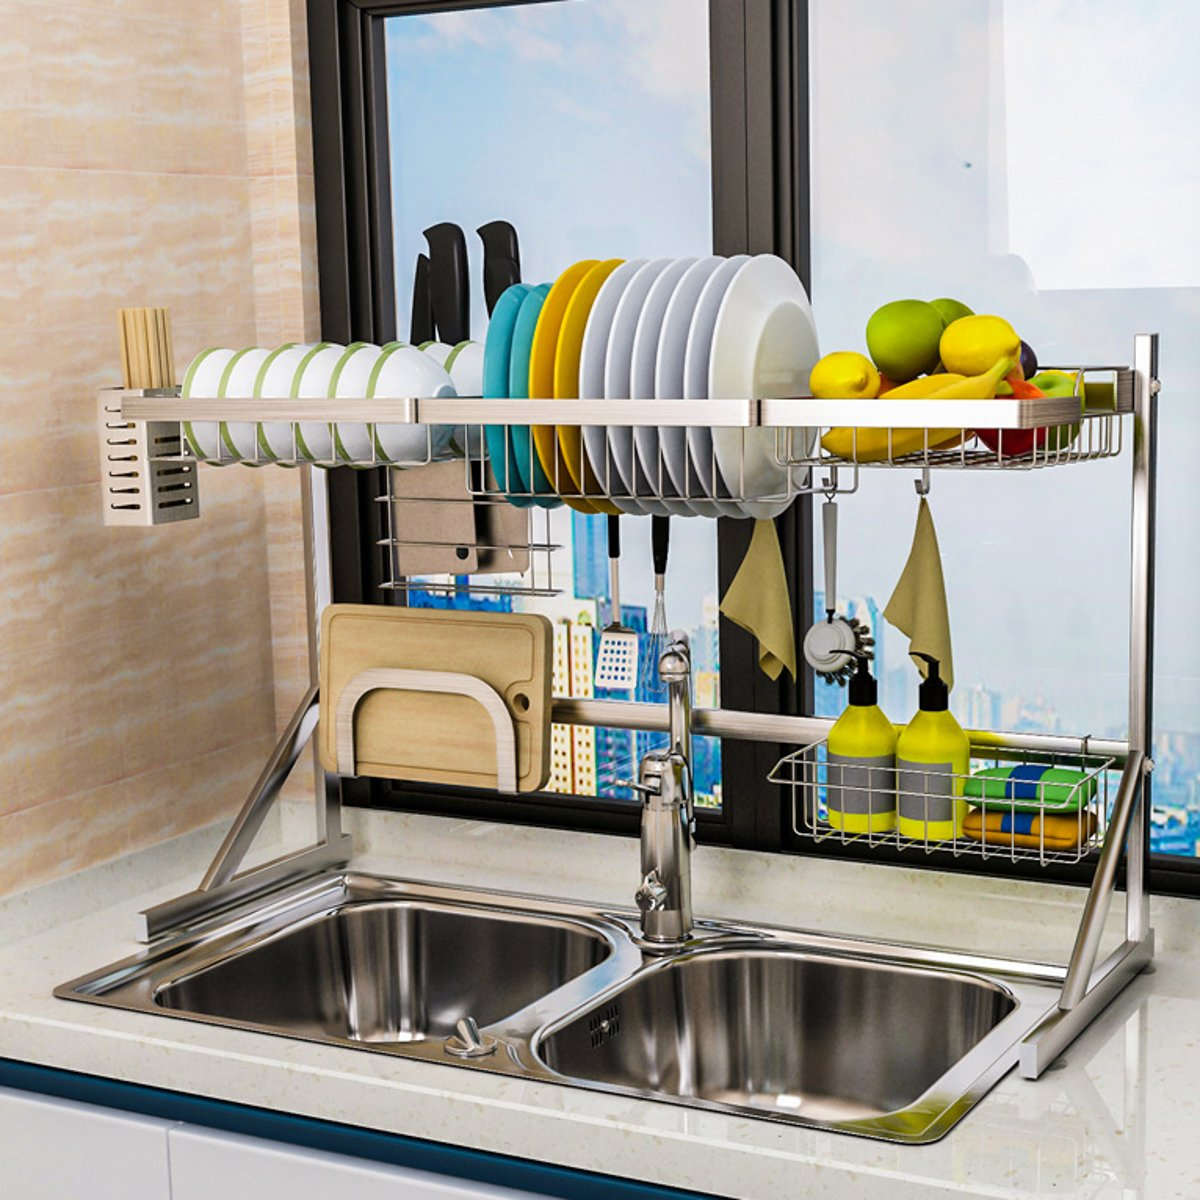 over sink dish drying rack stainless steel stable dish drainer shelf rust free multifunctional storage organizer with utensils holder for kitchen sink